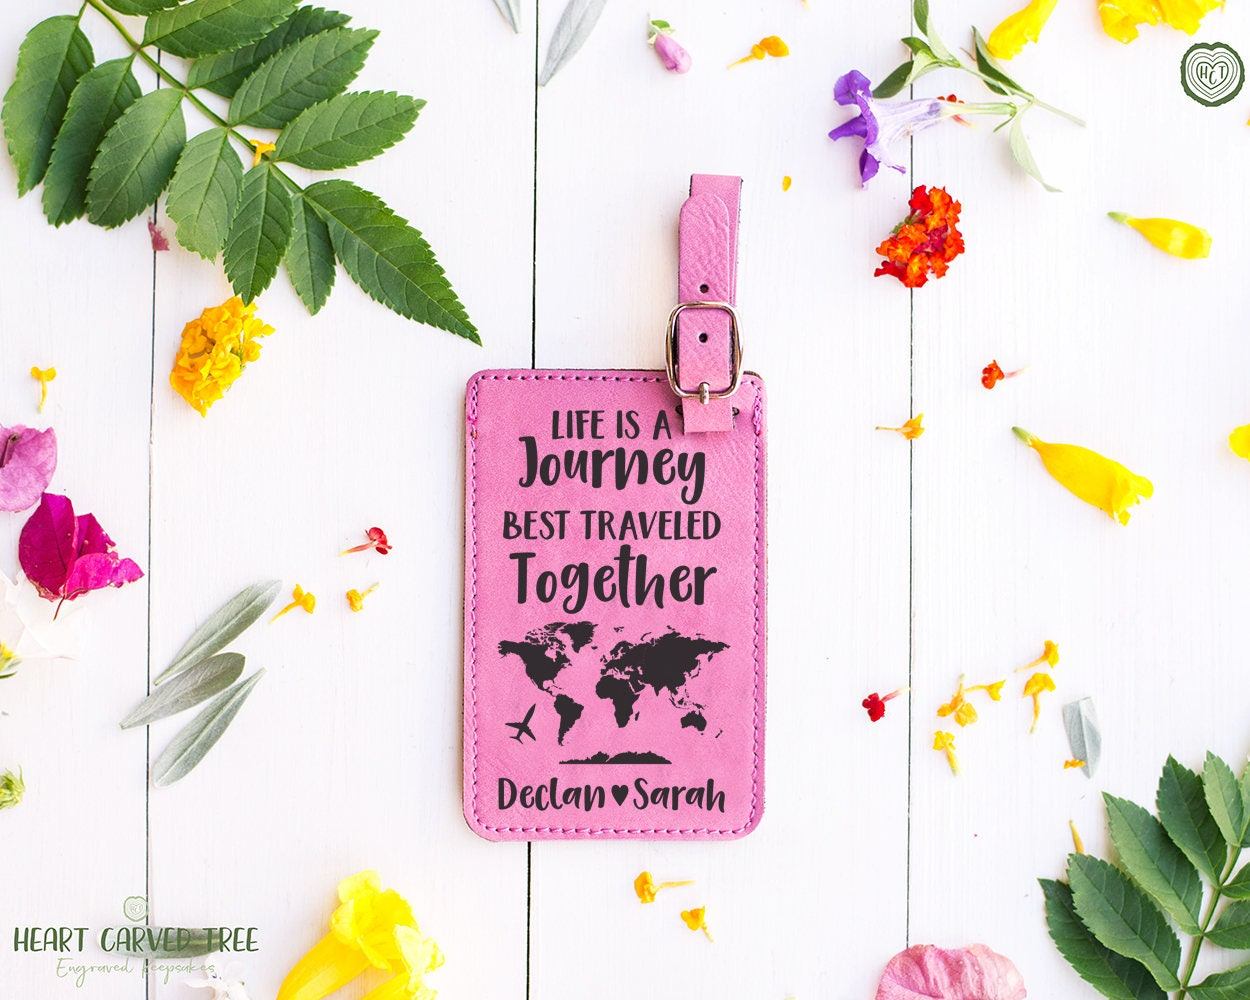 Life is a journey luggage tag personalized gifts wedding gift life is a journey luggage tag personalized gifts wedding gift world map luggage tag couples gift bride and groom first travel lt21 gumiabroncs Gallery